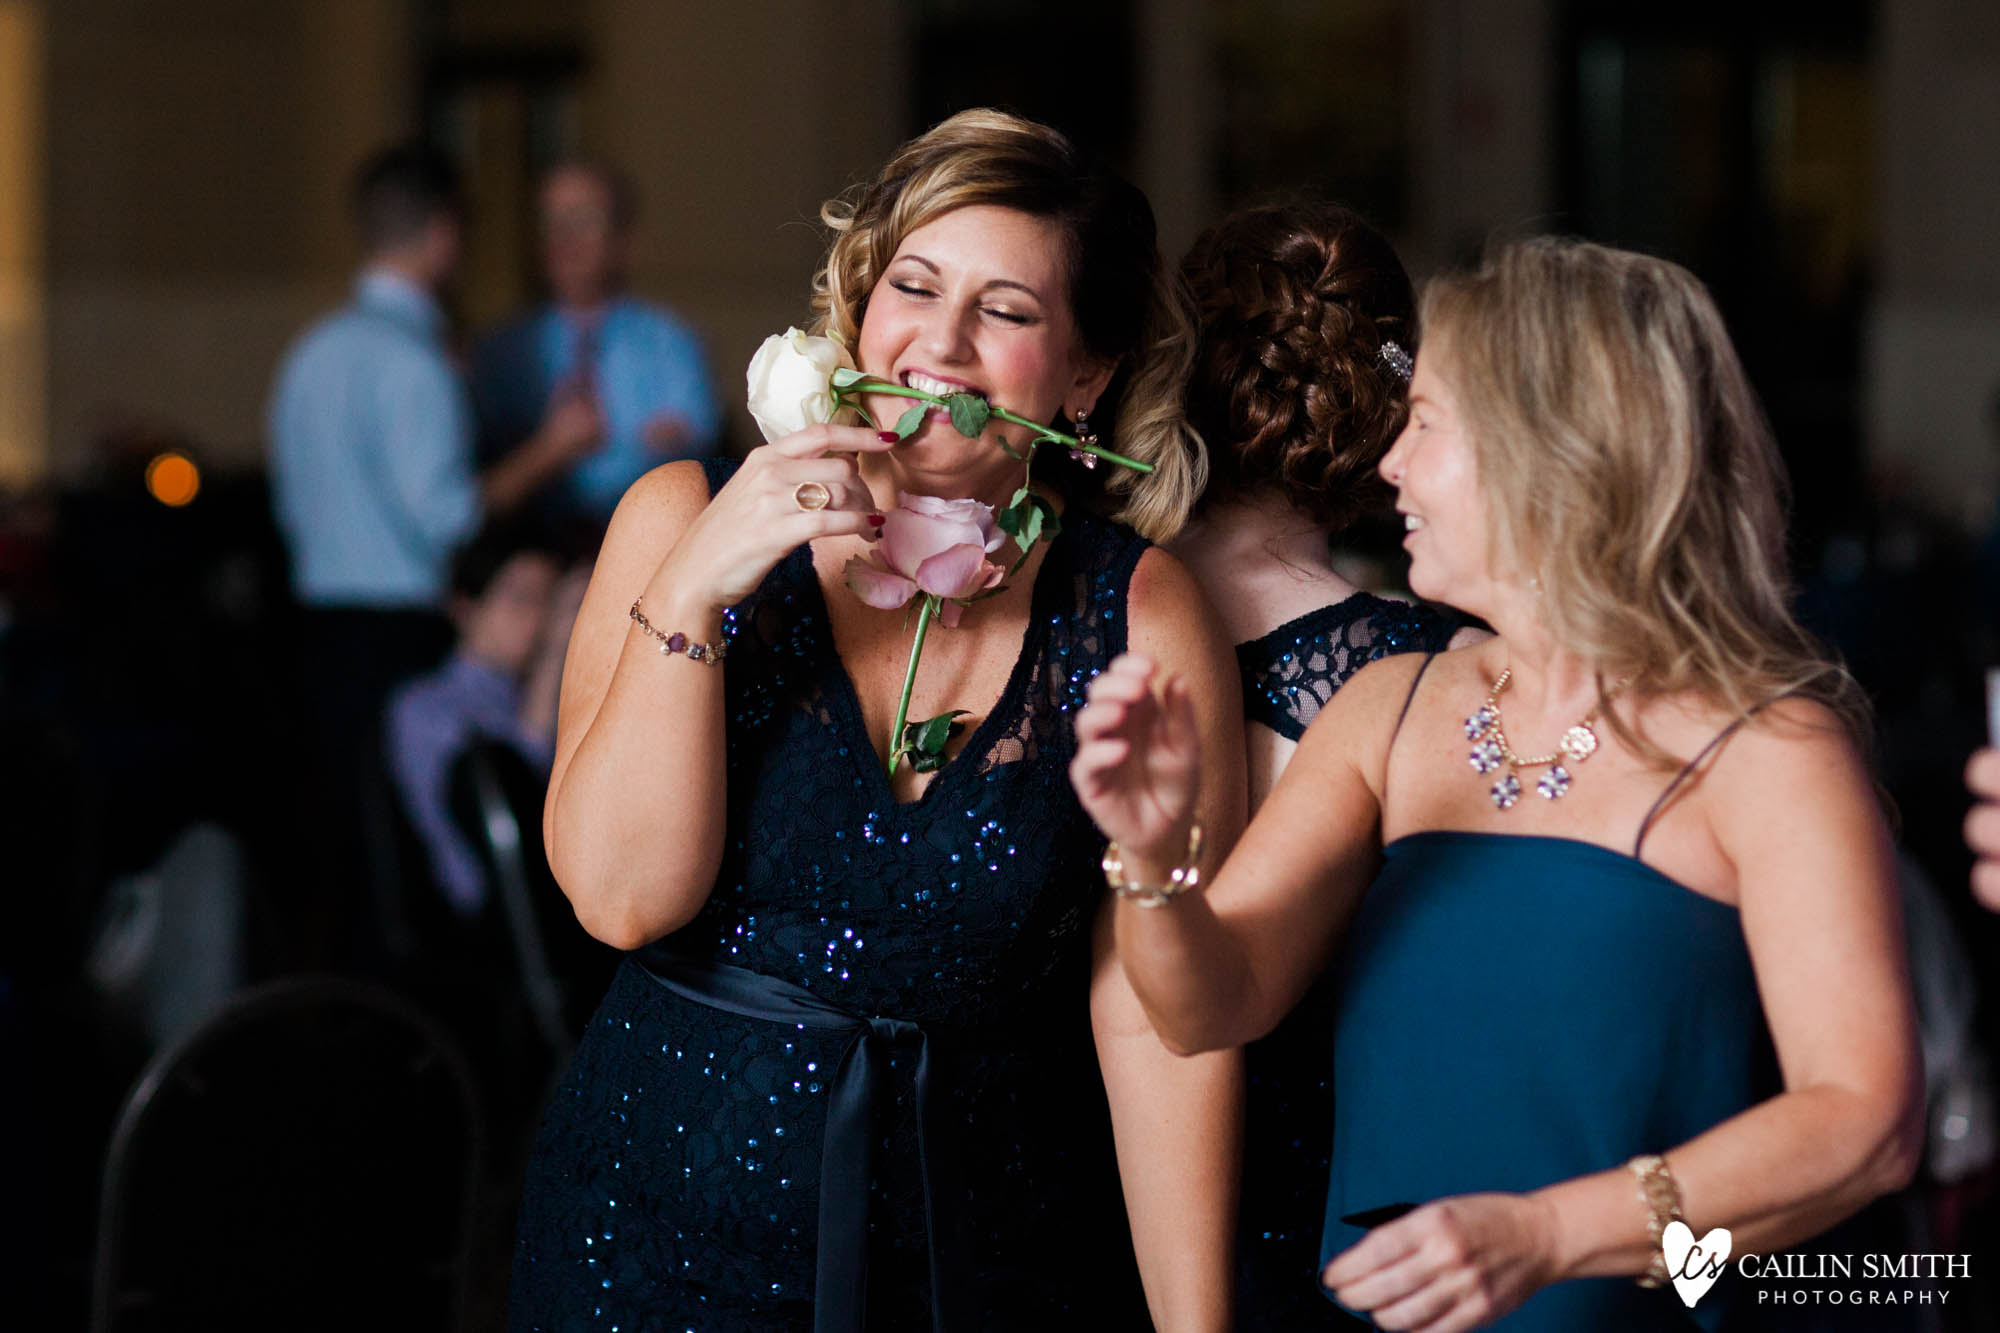 Christie_Nathan_Wedding_Photography_0074.jpg